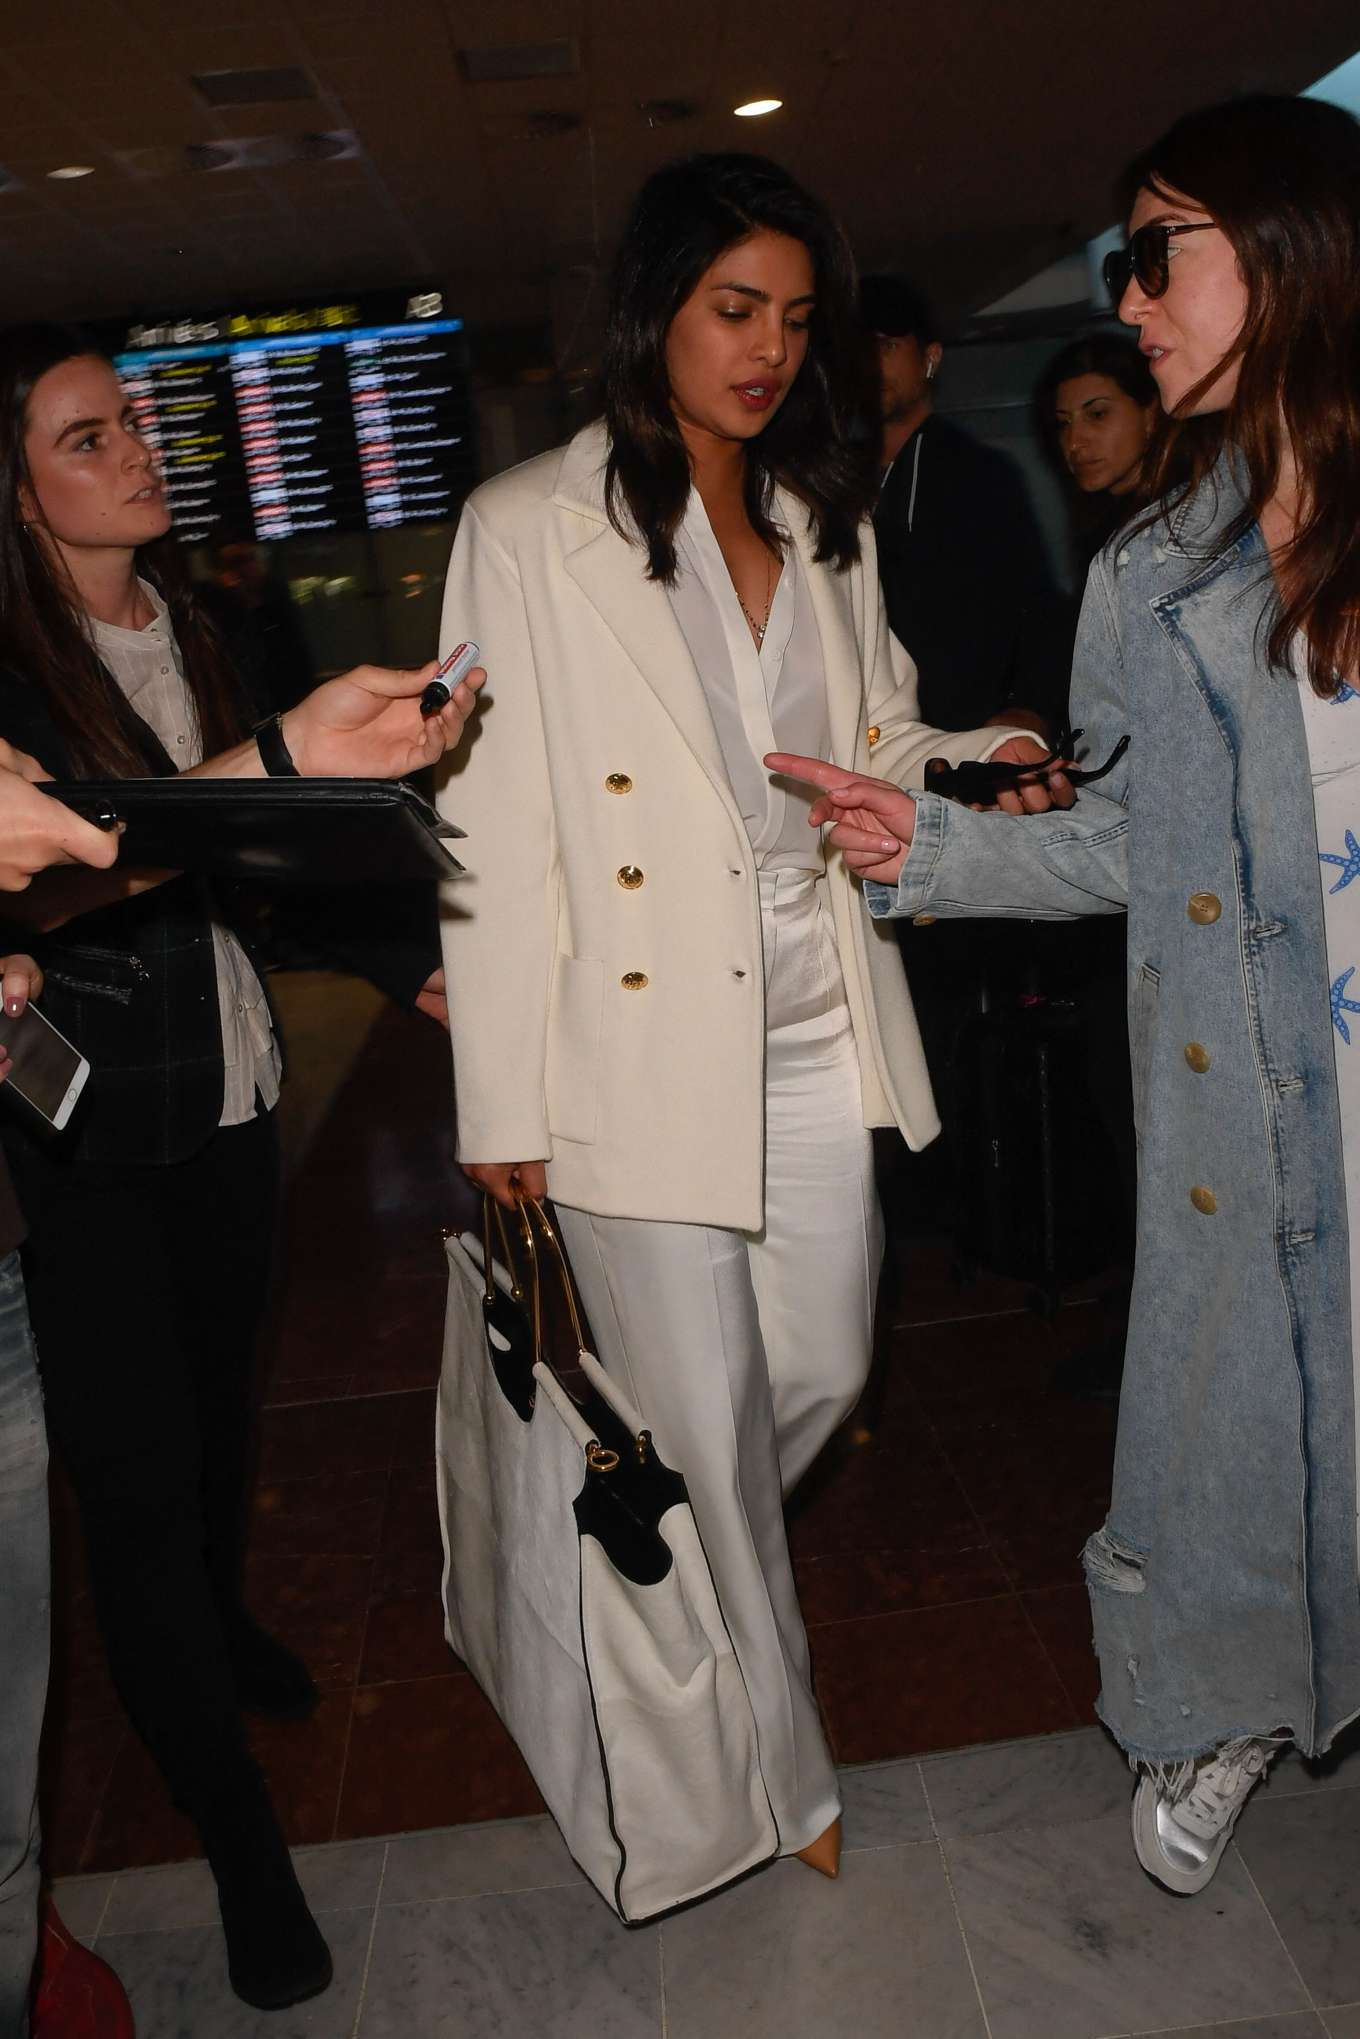 Priyanka Chopra, satin, white trousers, white double breasted blazer, tan pumps, high rise, wide leg. Priyanka Chopra wearing High rise shiny white satin trousers with a satin material